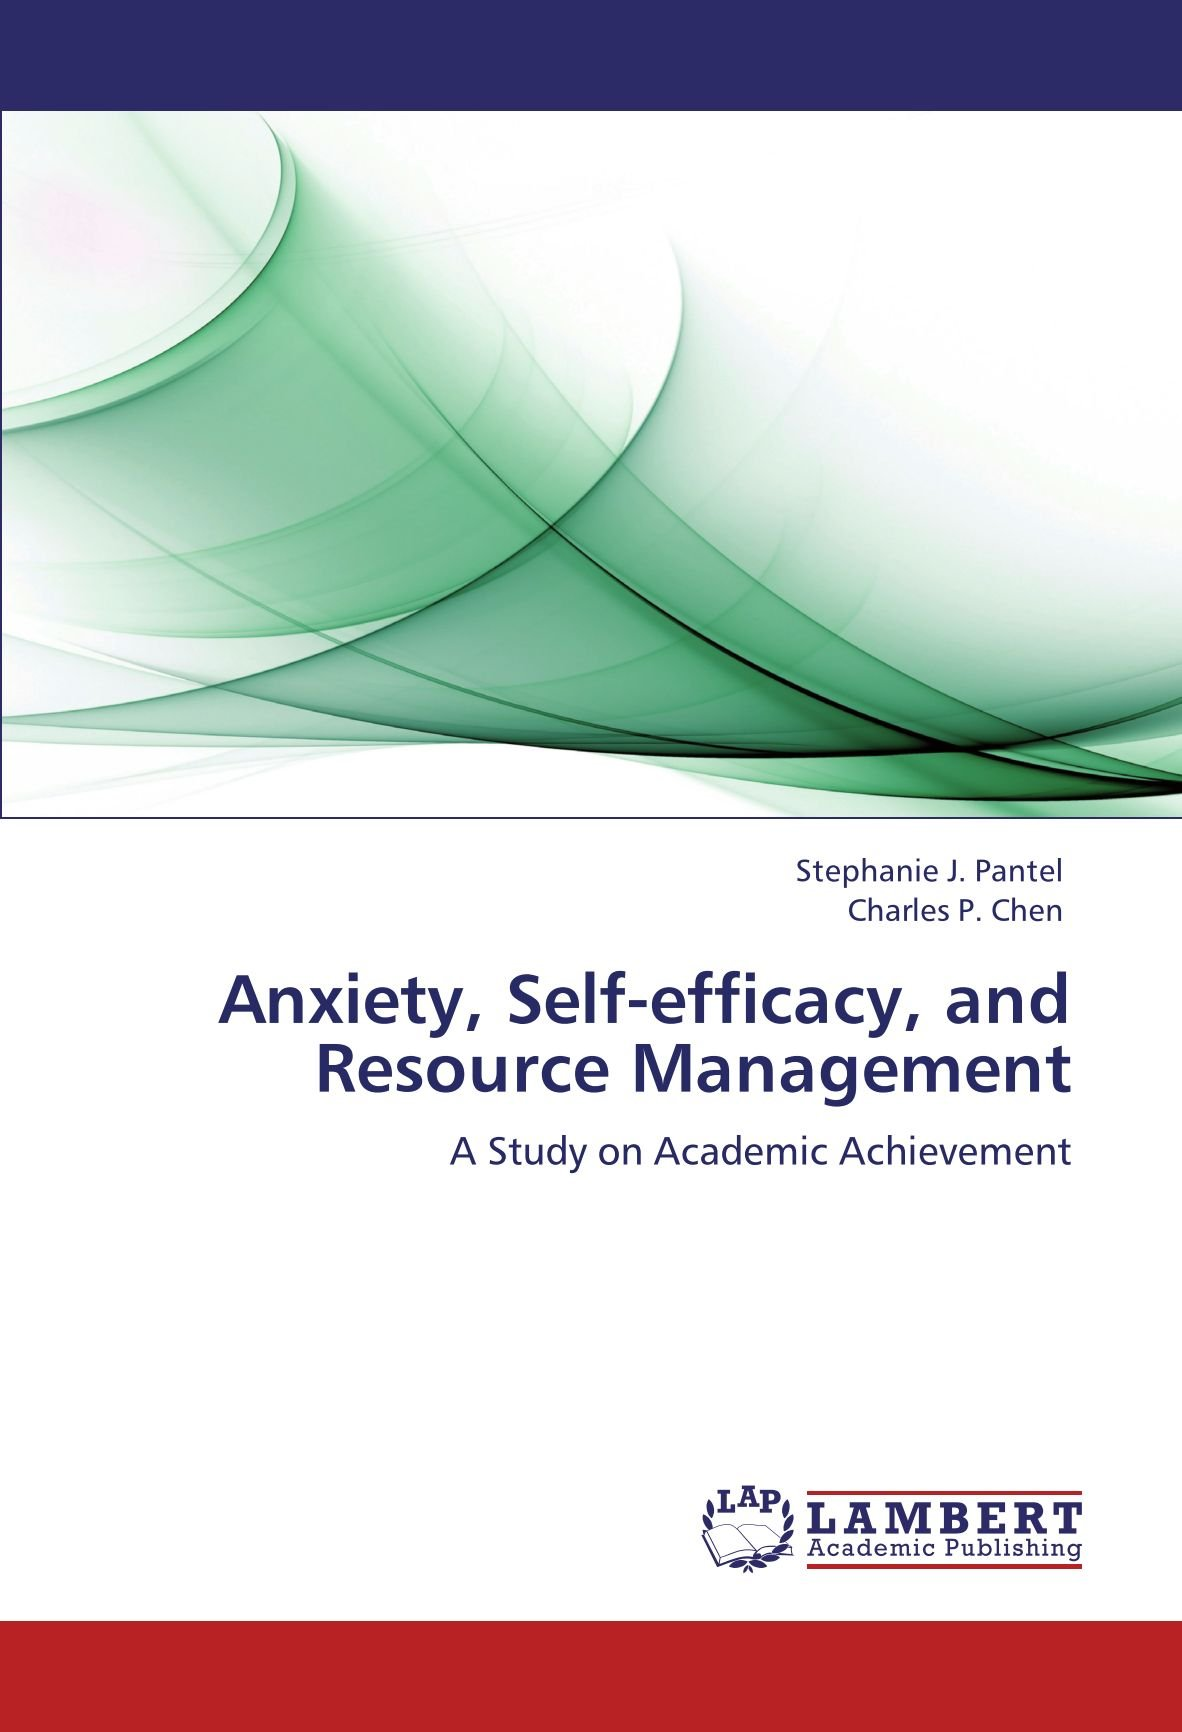 Anxiety, Self-efficacy, and Resource Management: A Study on Academic Achievement PDF